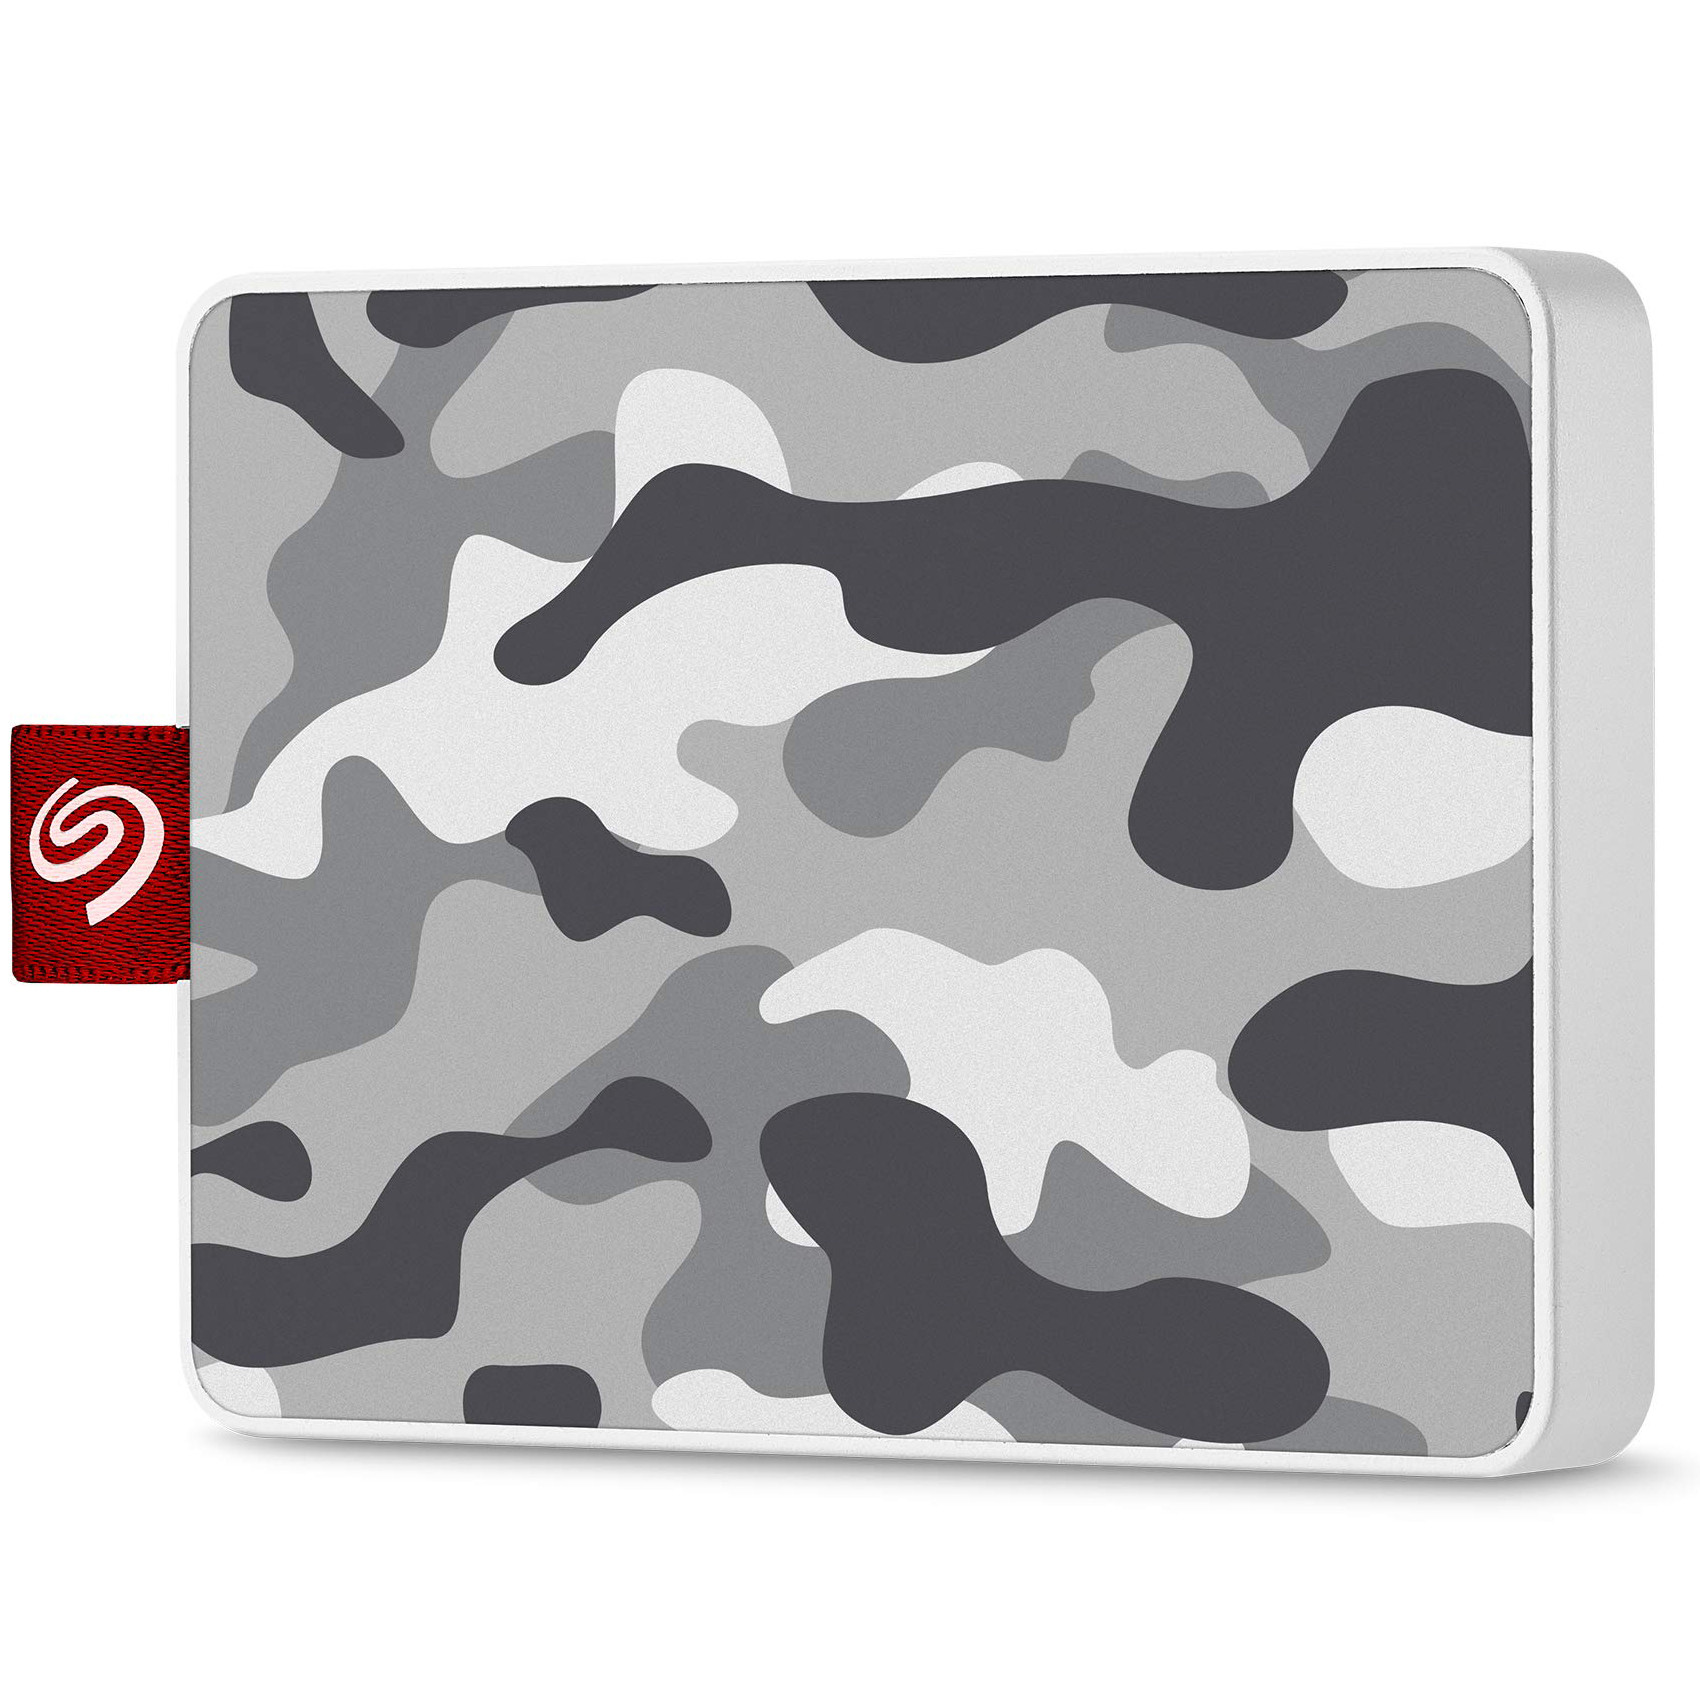 Ổ cứng di động Seagate One Touch Camo SSD 500 GB STJE500404